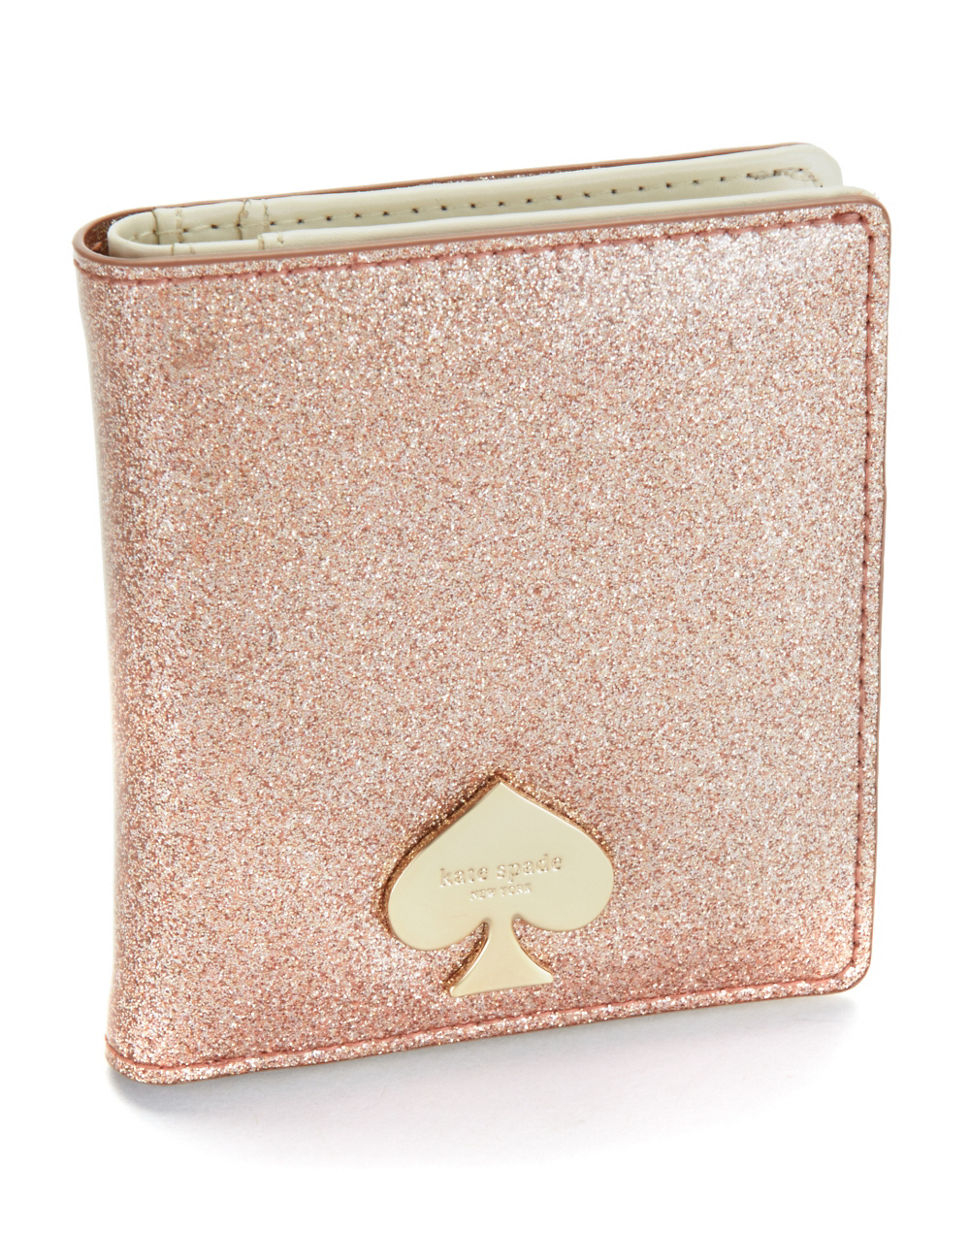 Kate Spade Glitter Bug Small Stacy Wallet In Gold Rose